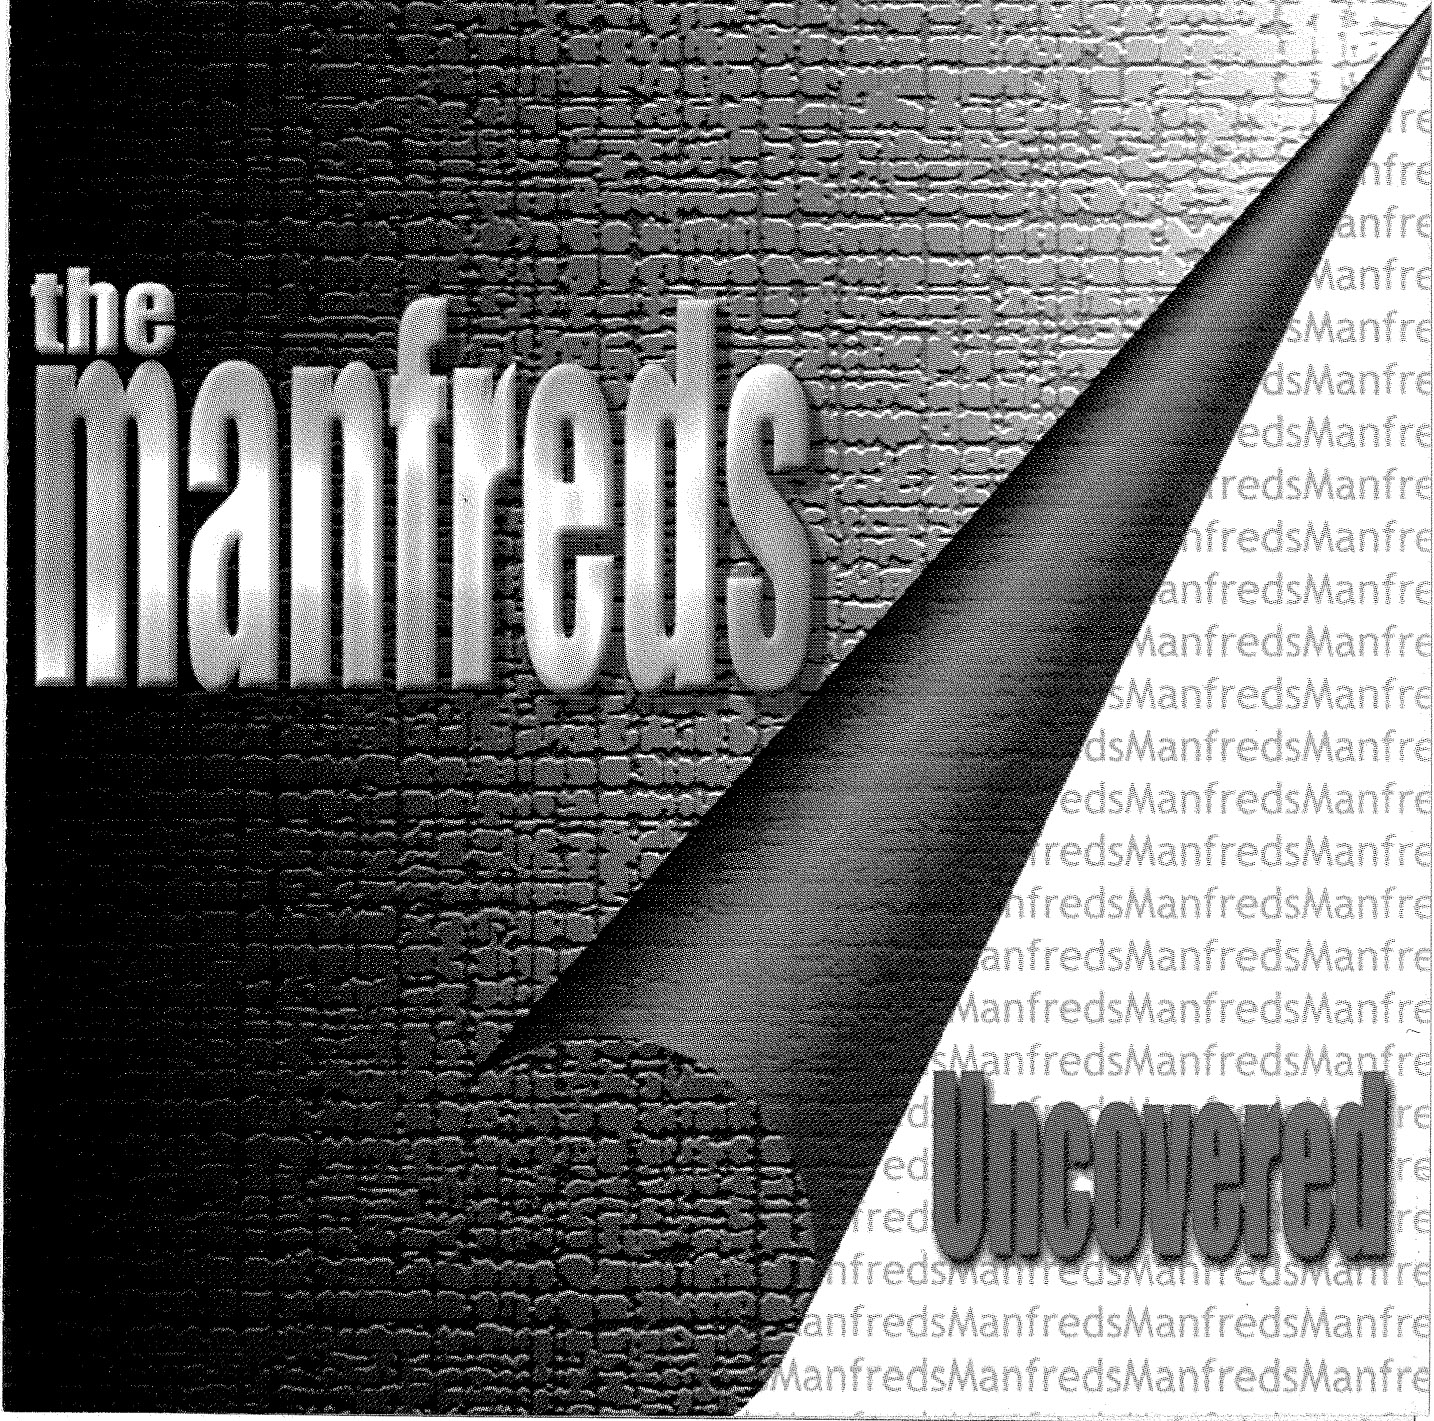 The Manfreds - Uncovered